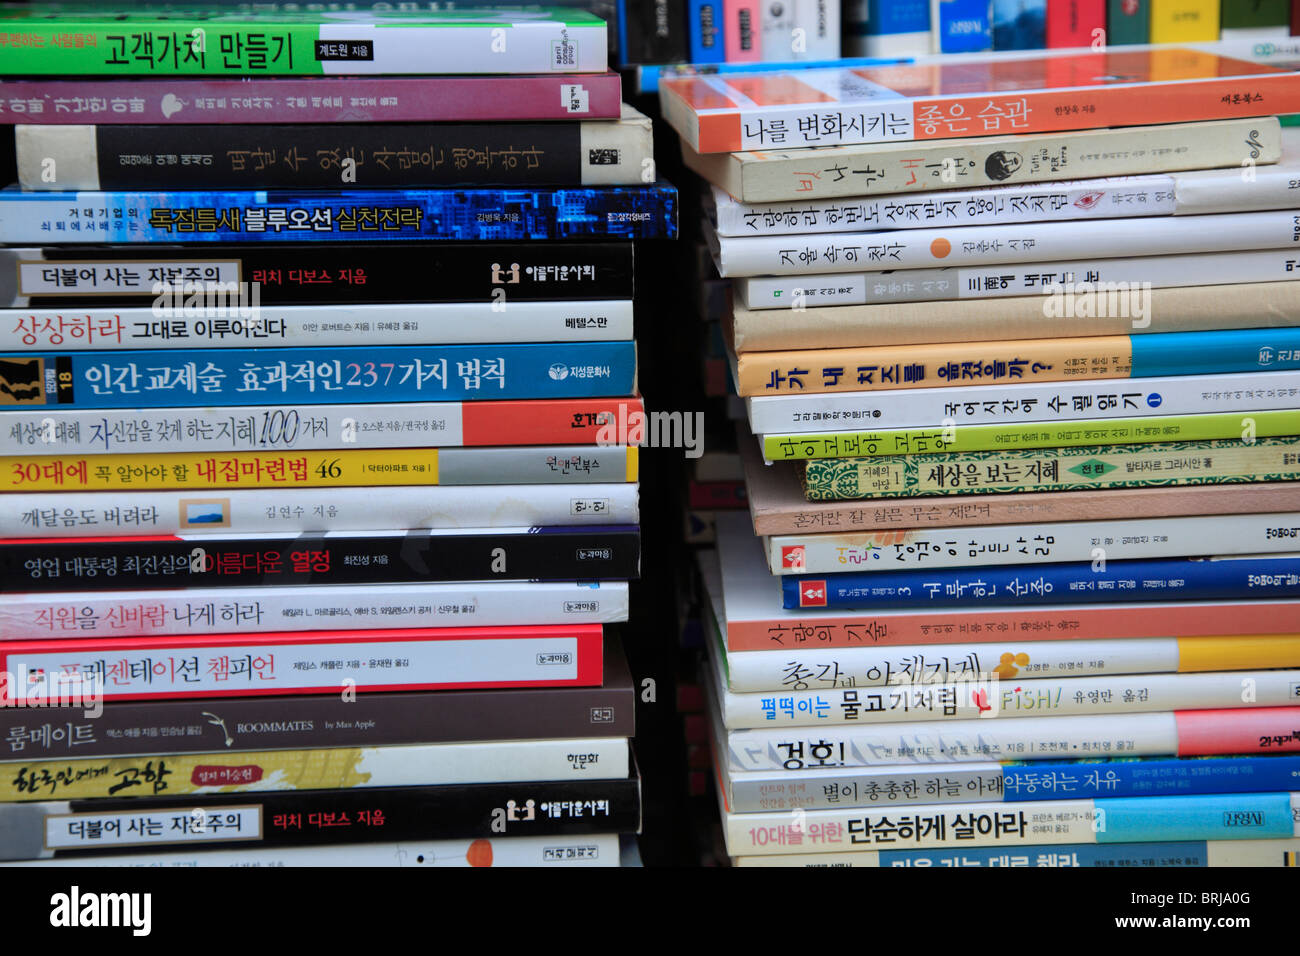 Books, Dongdaemun Market, Seoul, South Korea, Asia Stock